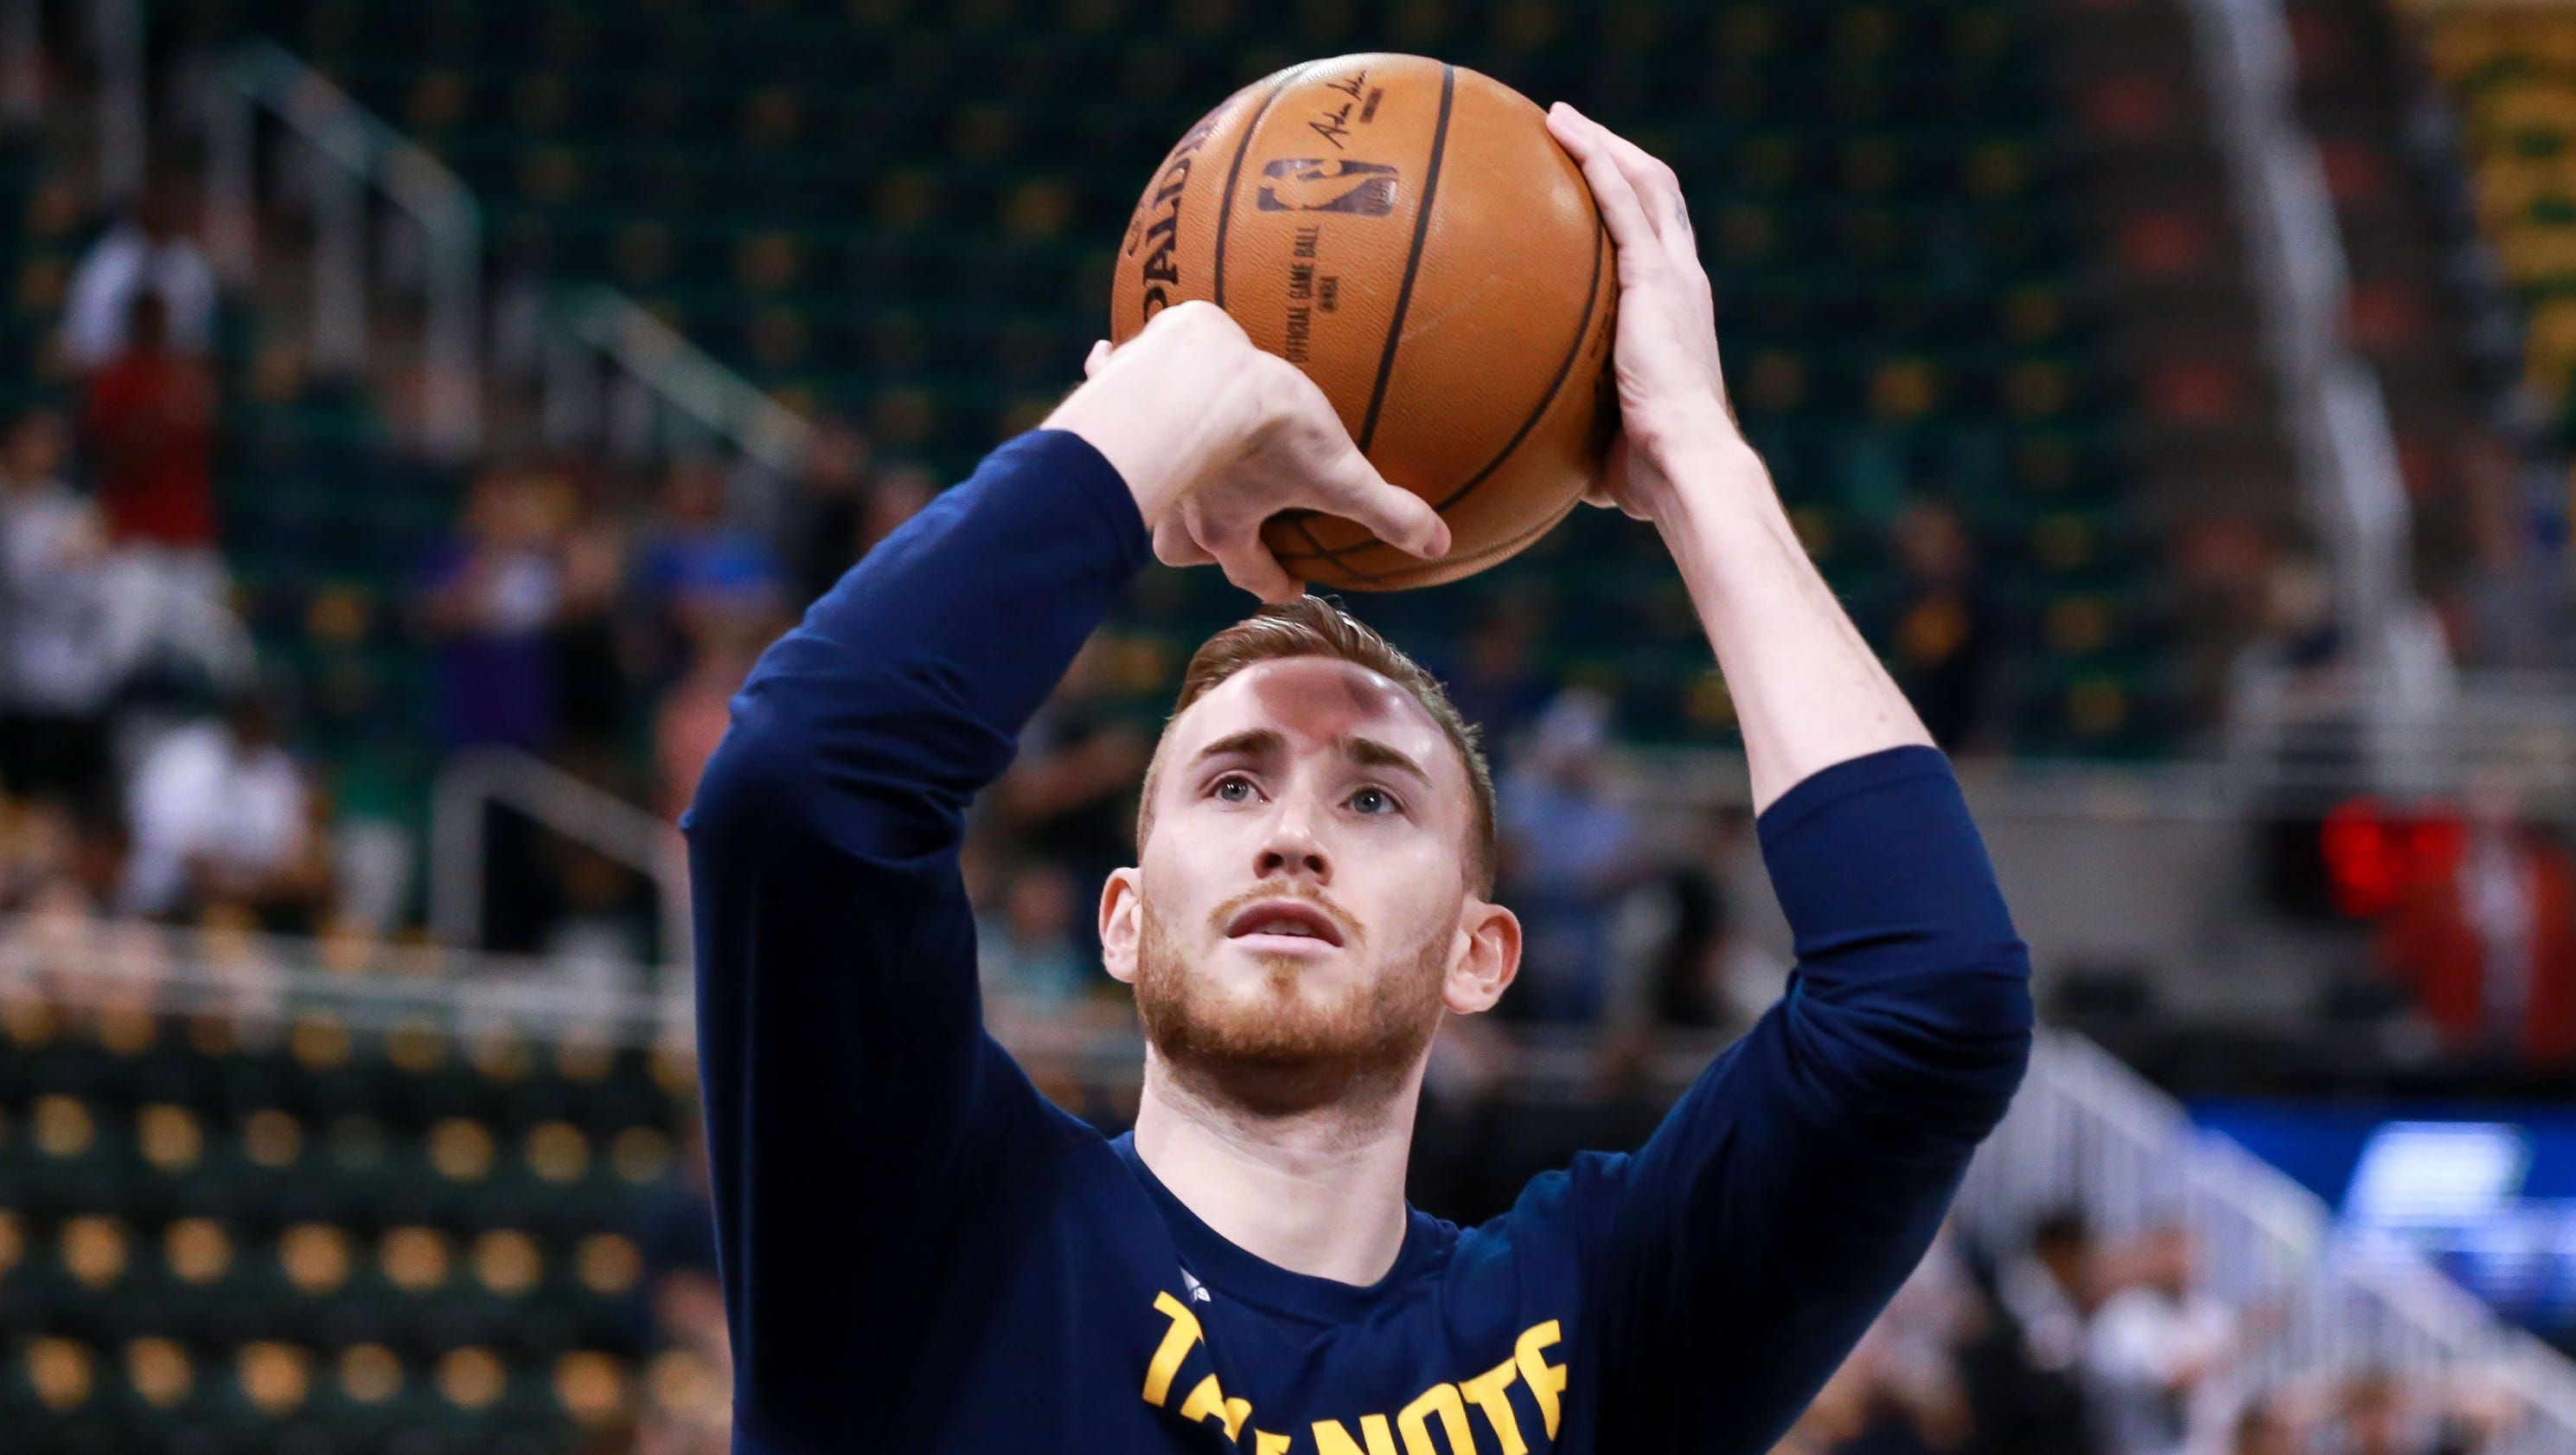 NBA free agency: Will top players stay or go?